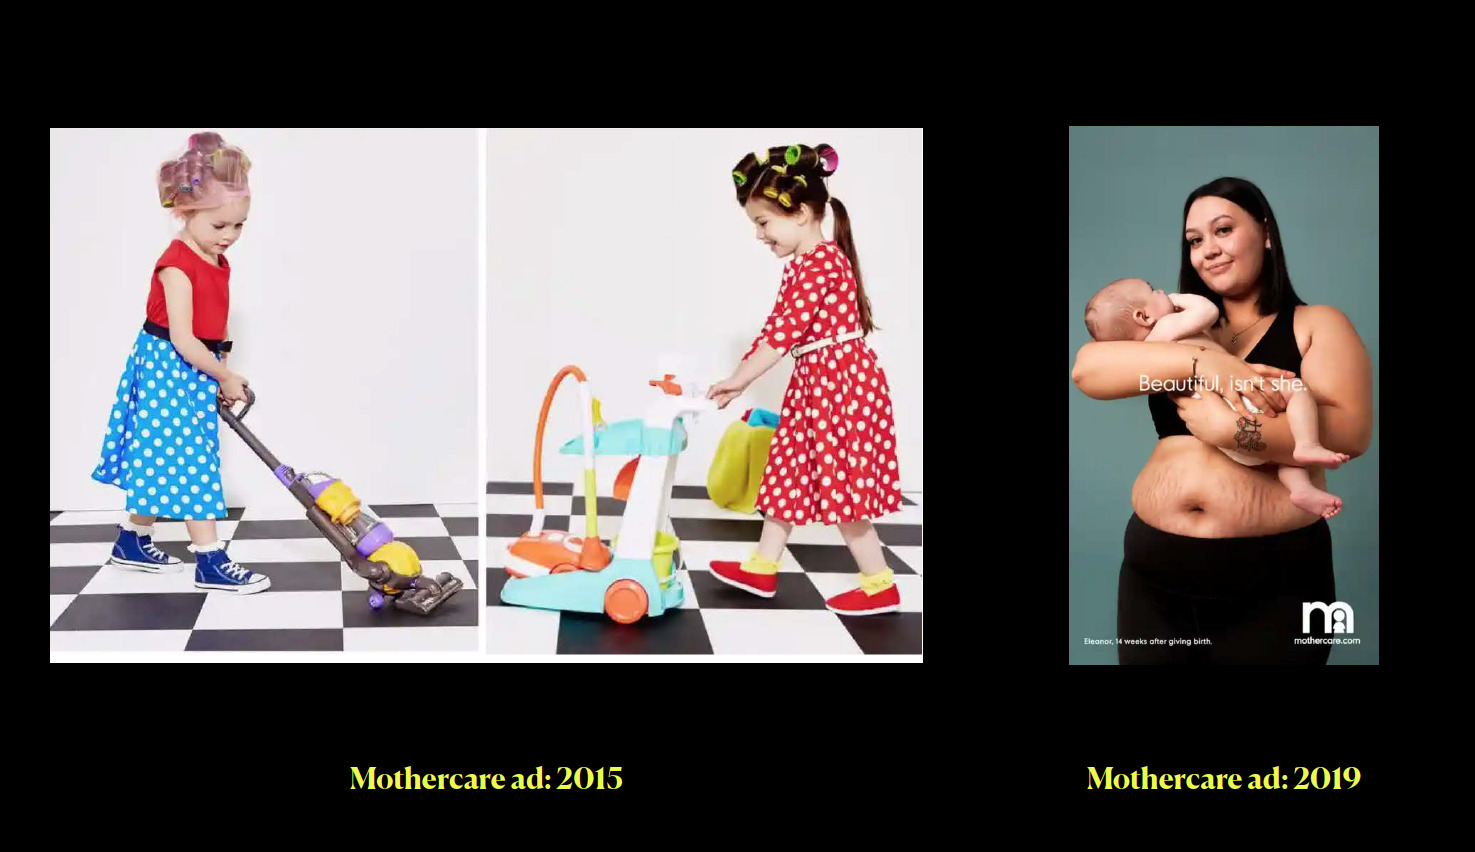 """A slide showing two Mothercare adverts. The one from 2015 shows two children dressed as 1950s housewives hoovering and cleaning, the one from 2019 shows a woman who has recently given birth, holding a baby, with the caption """"beautiful isn't she"""""""